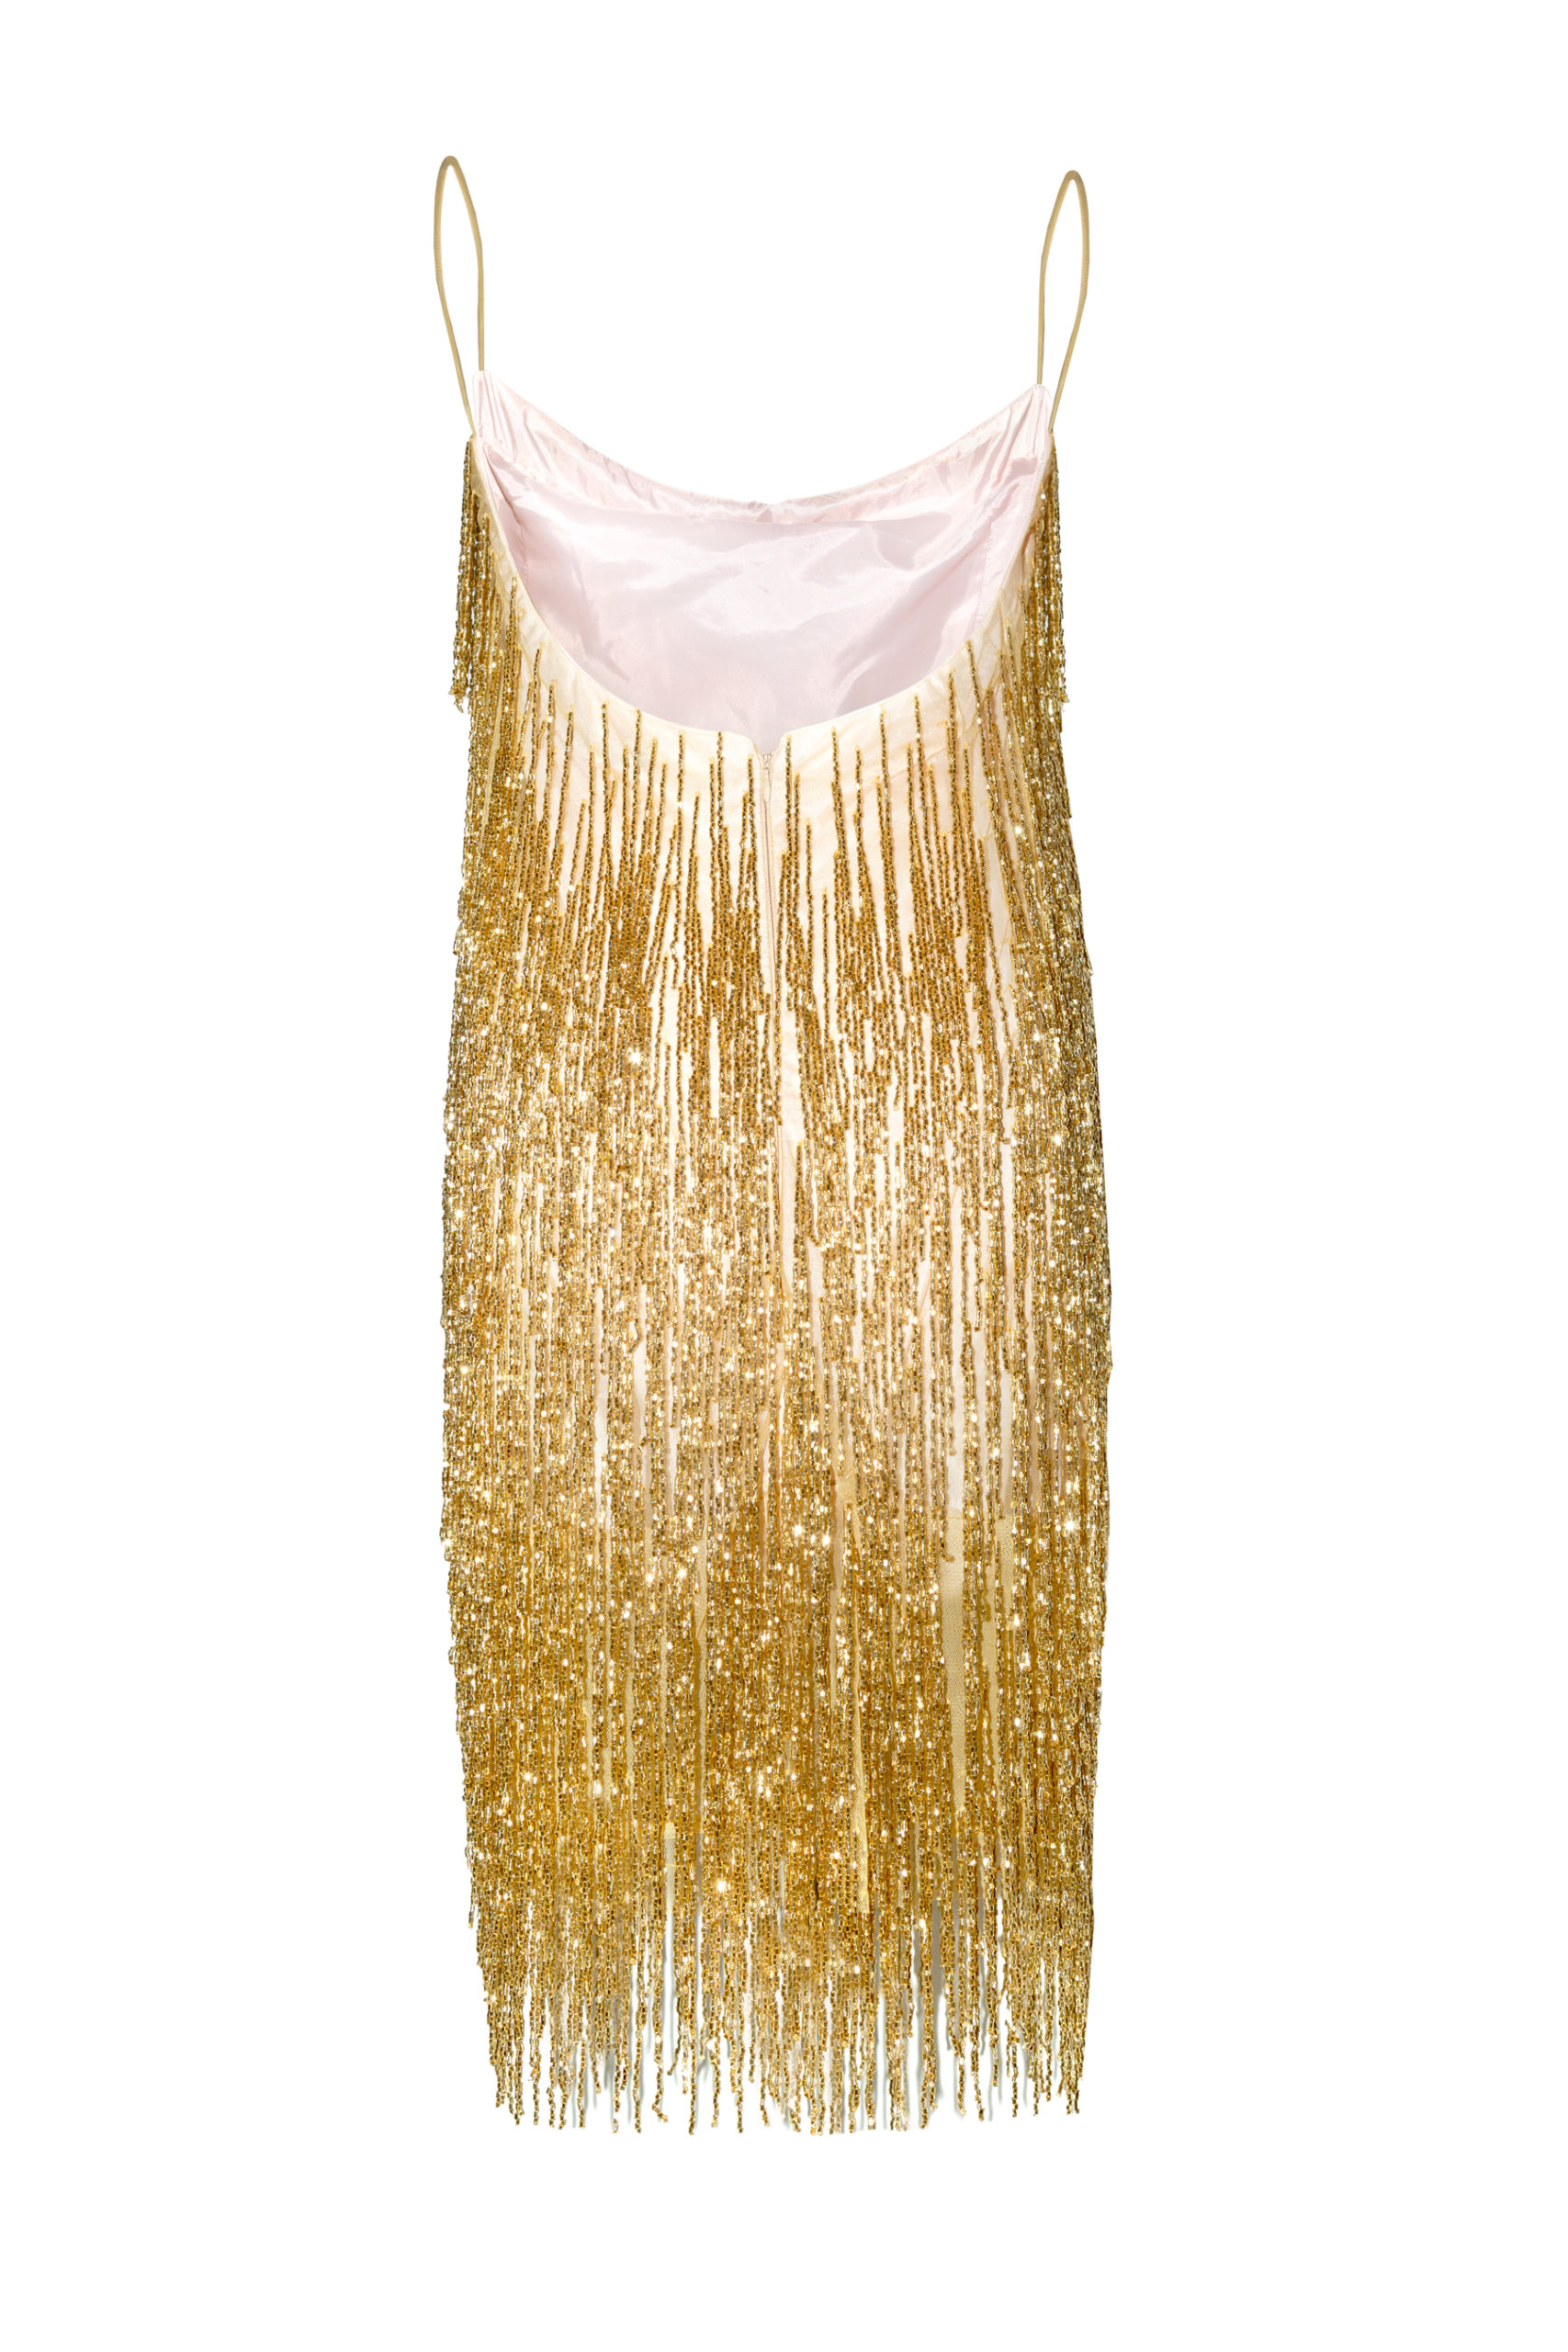 Crystal gold dress back